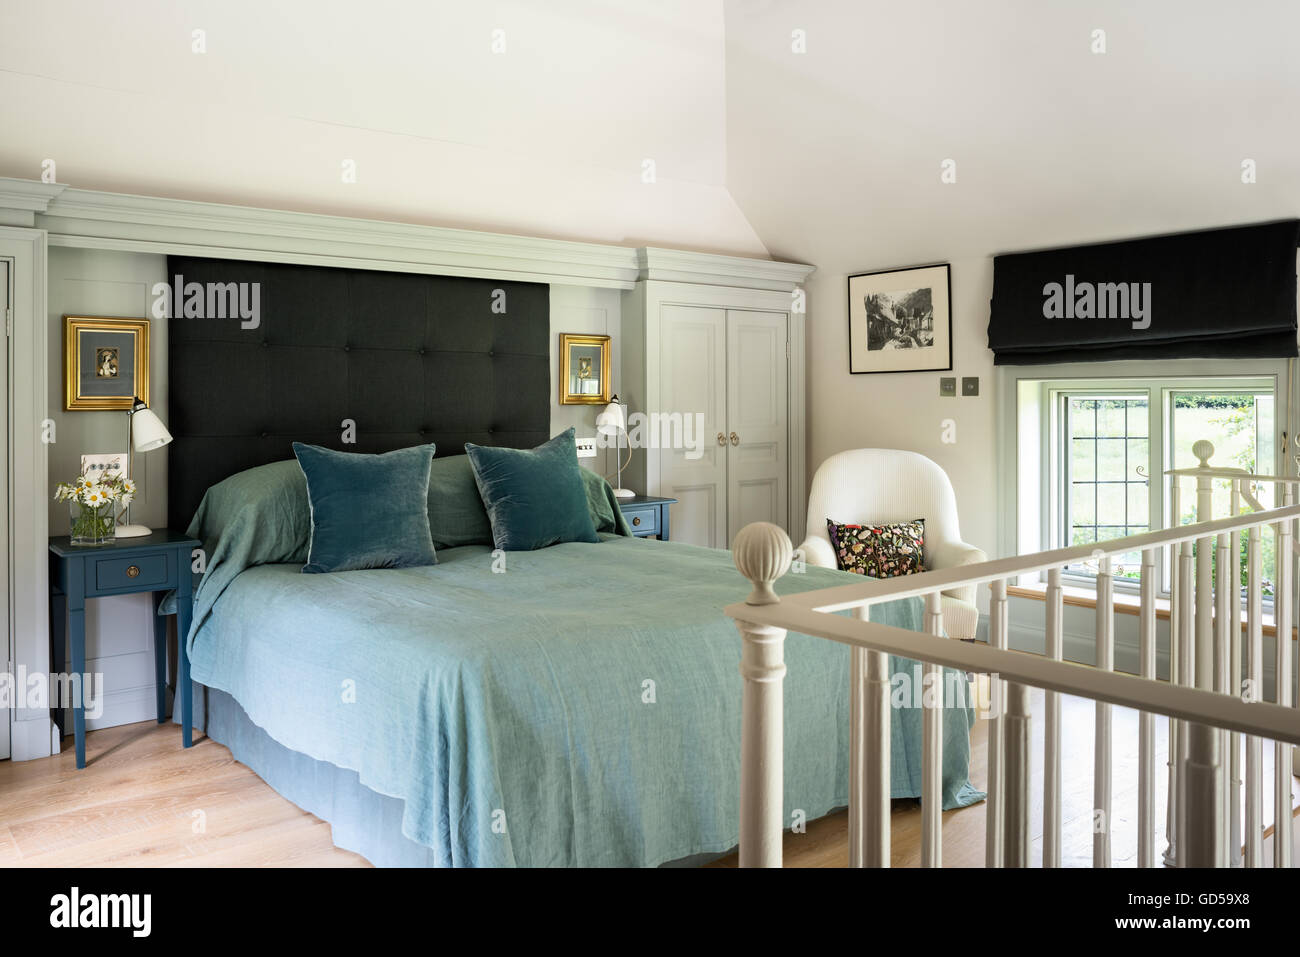 Light Bedroom With Headboard And Blinds Made By Clemency Rittner